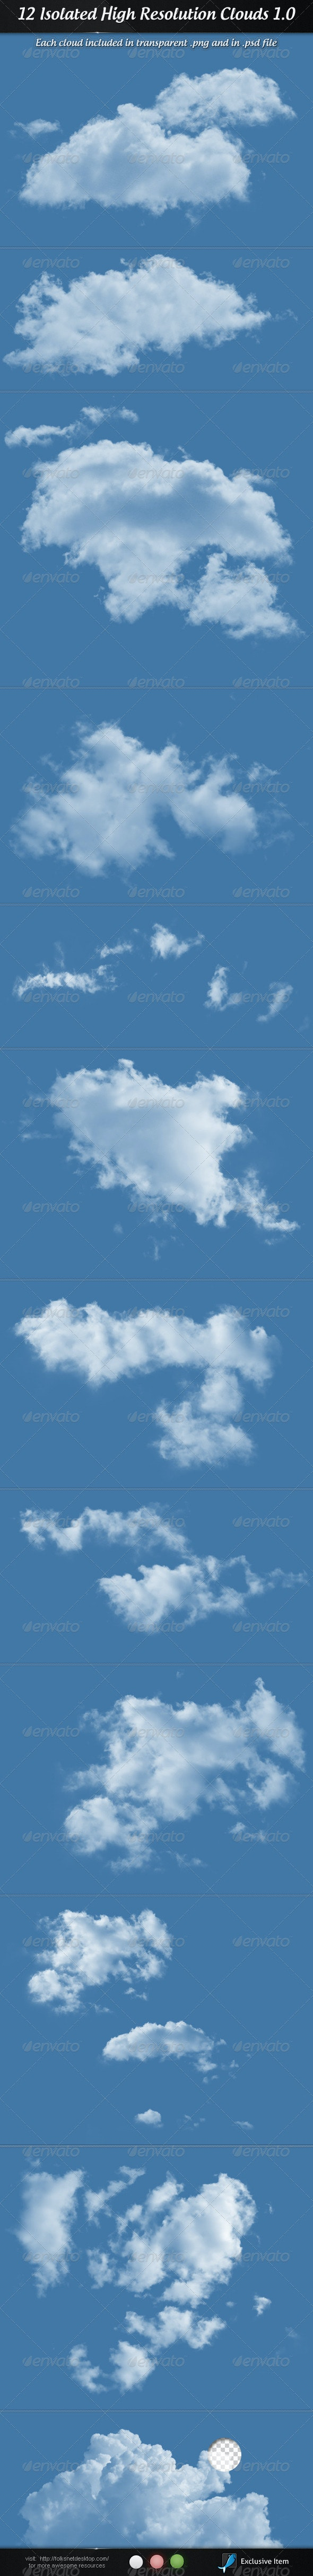 Clouds 1.0 - Isolated Objects